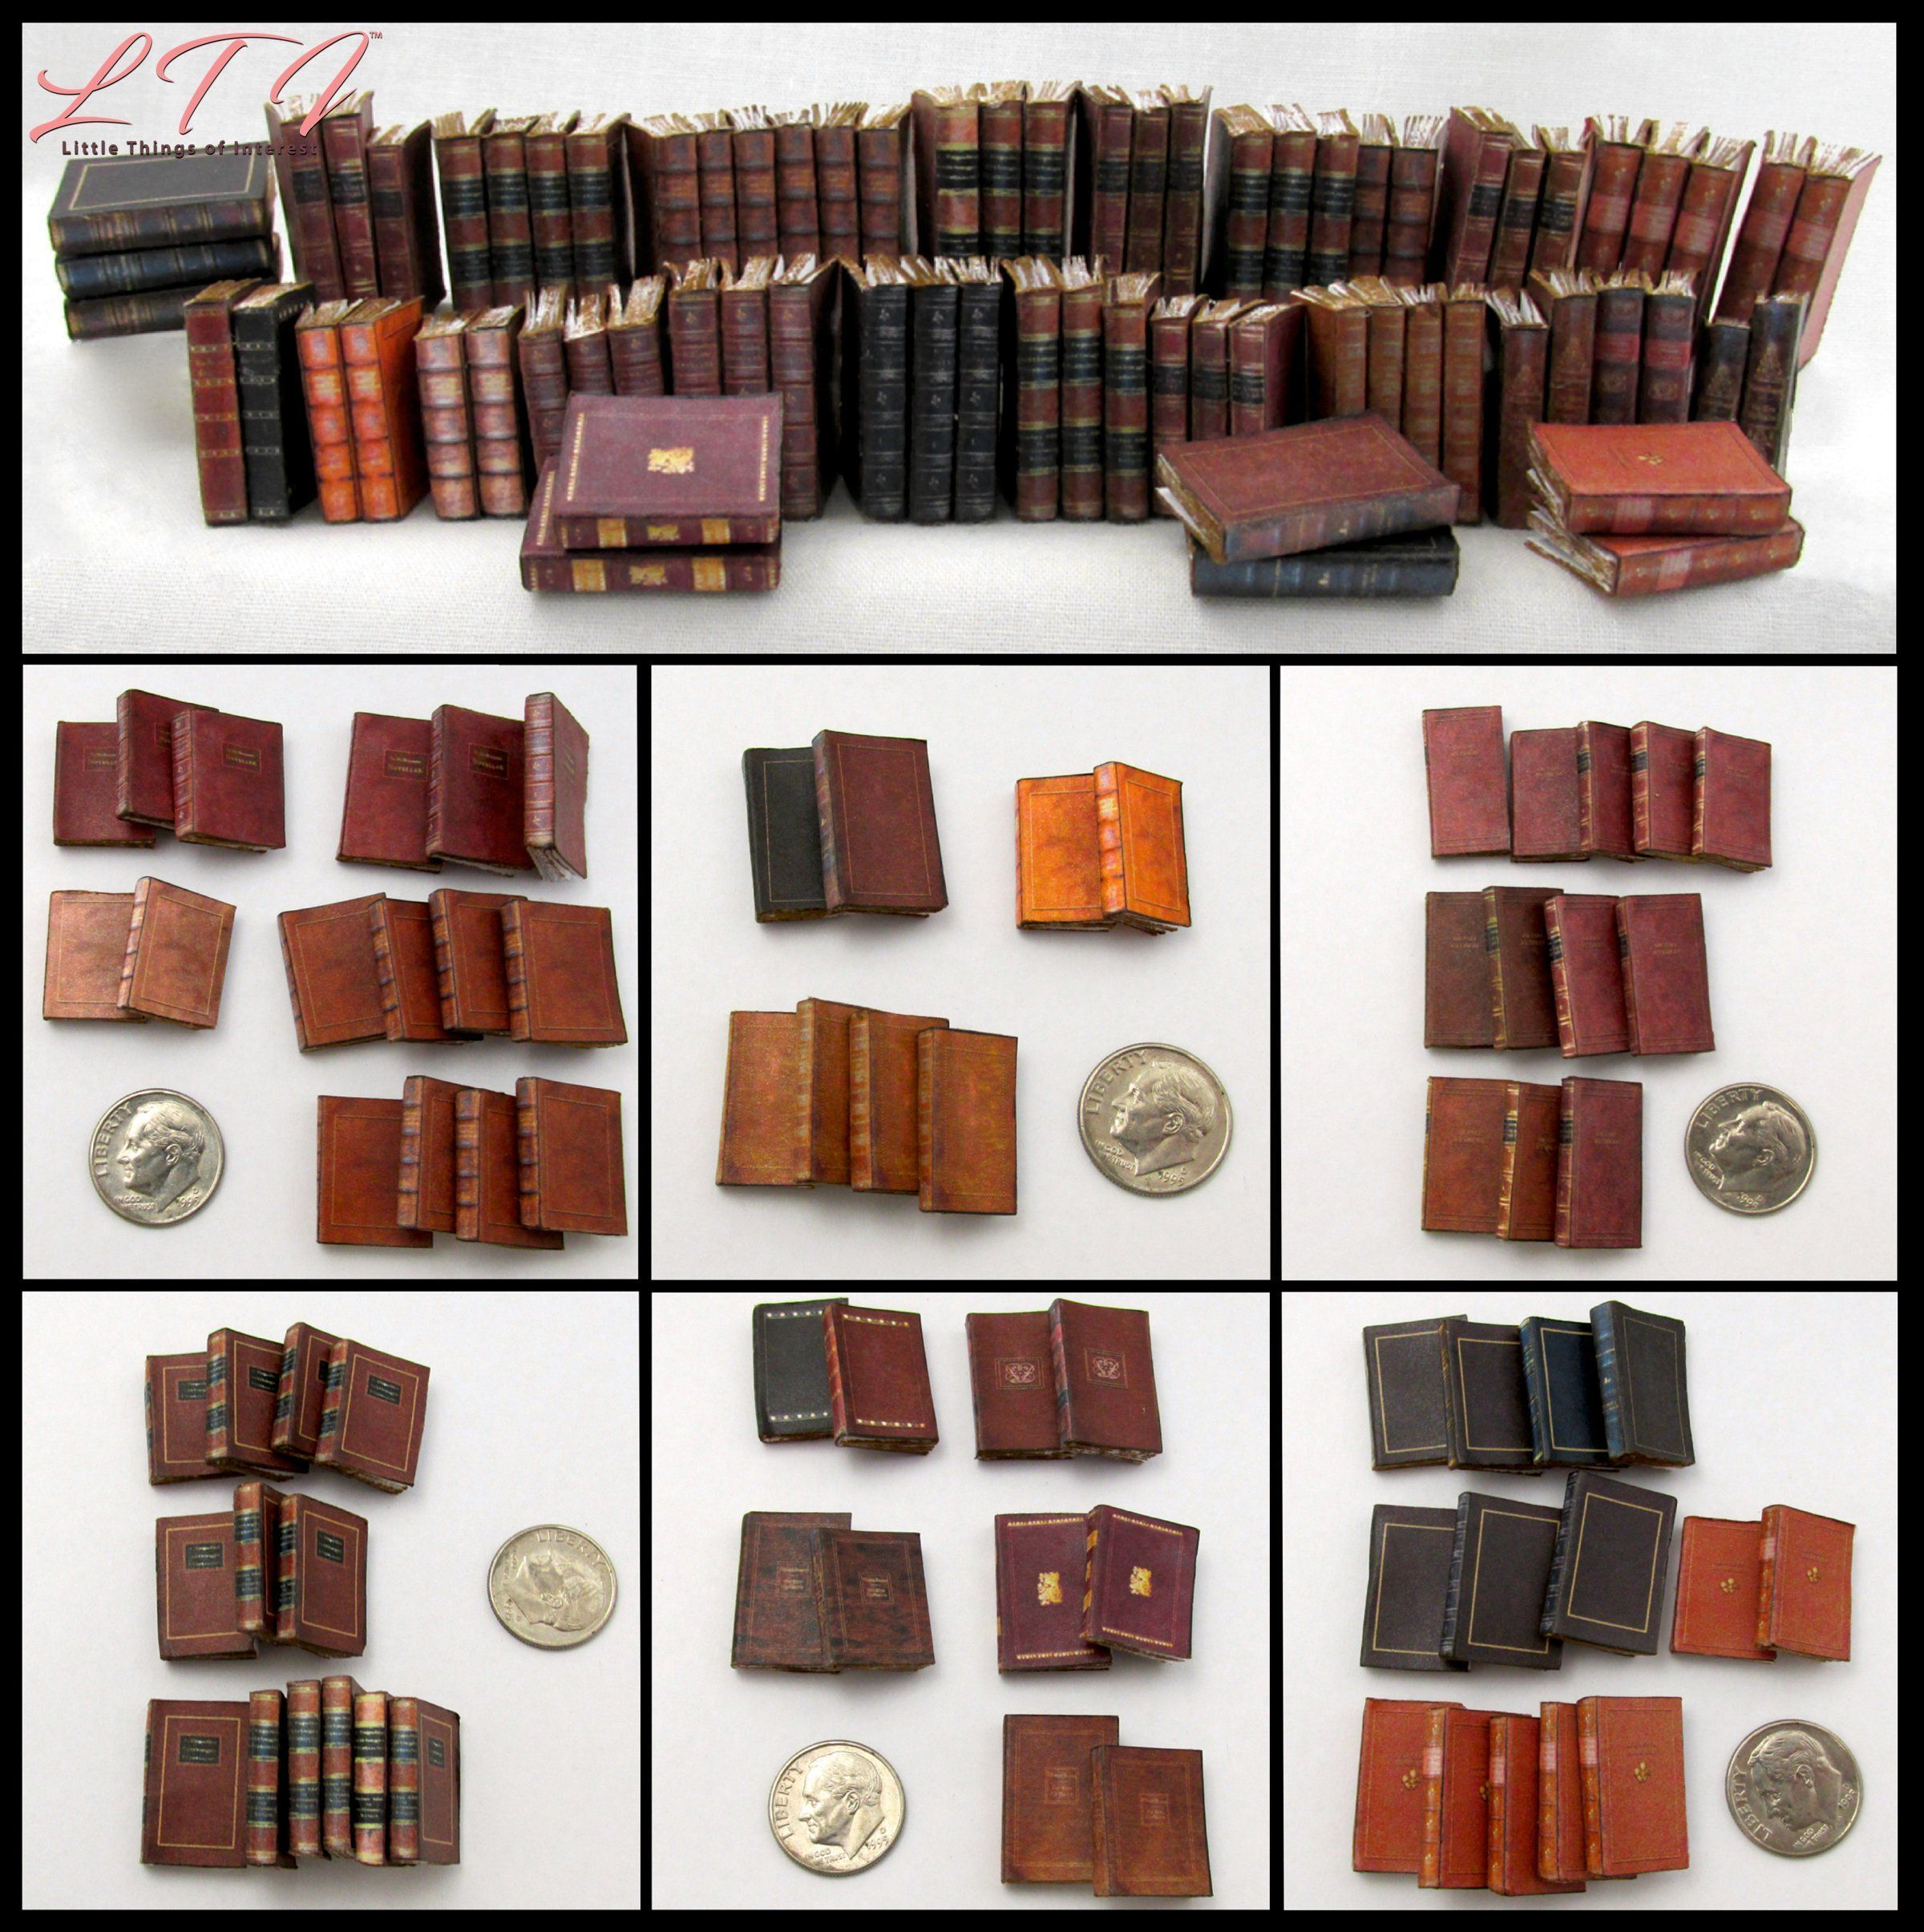 Dollhouse Miniatures Books Library Accessories Book Office Supplies Accessories